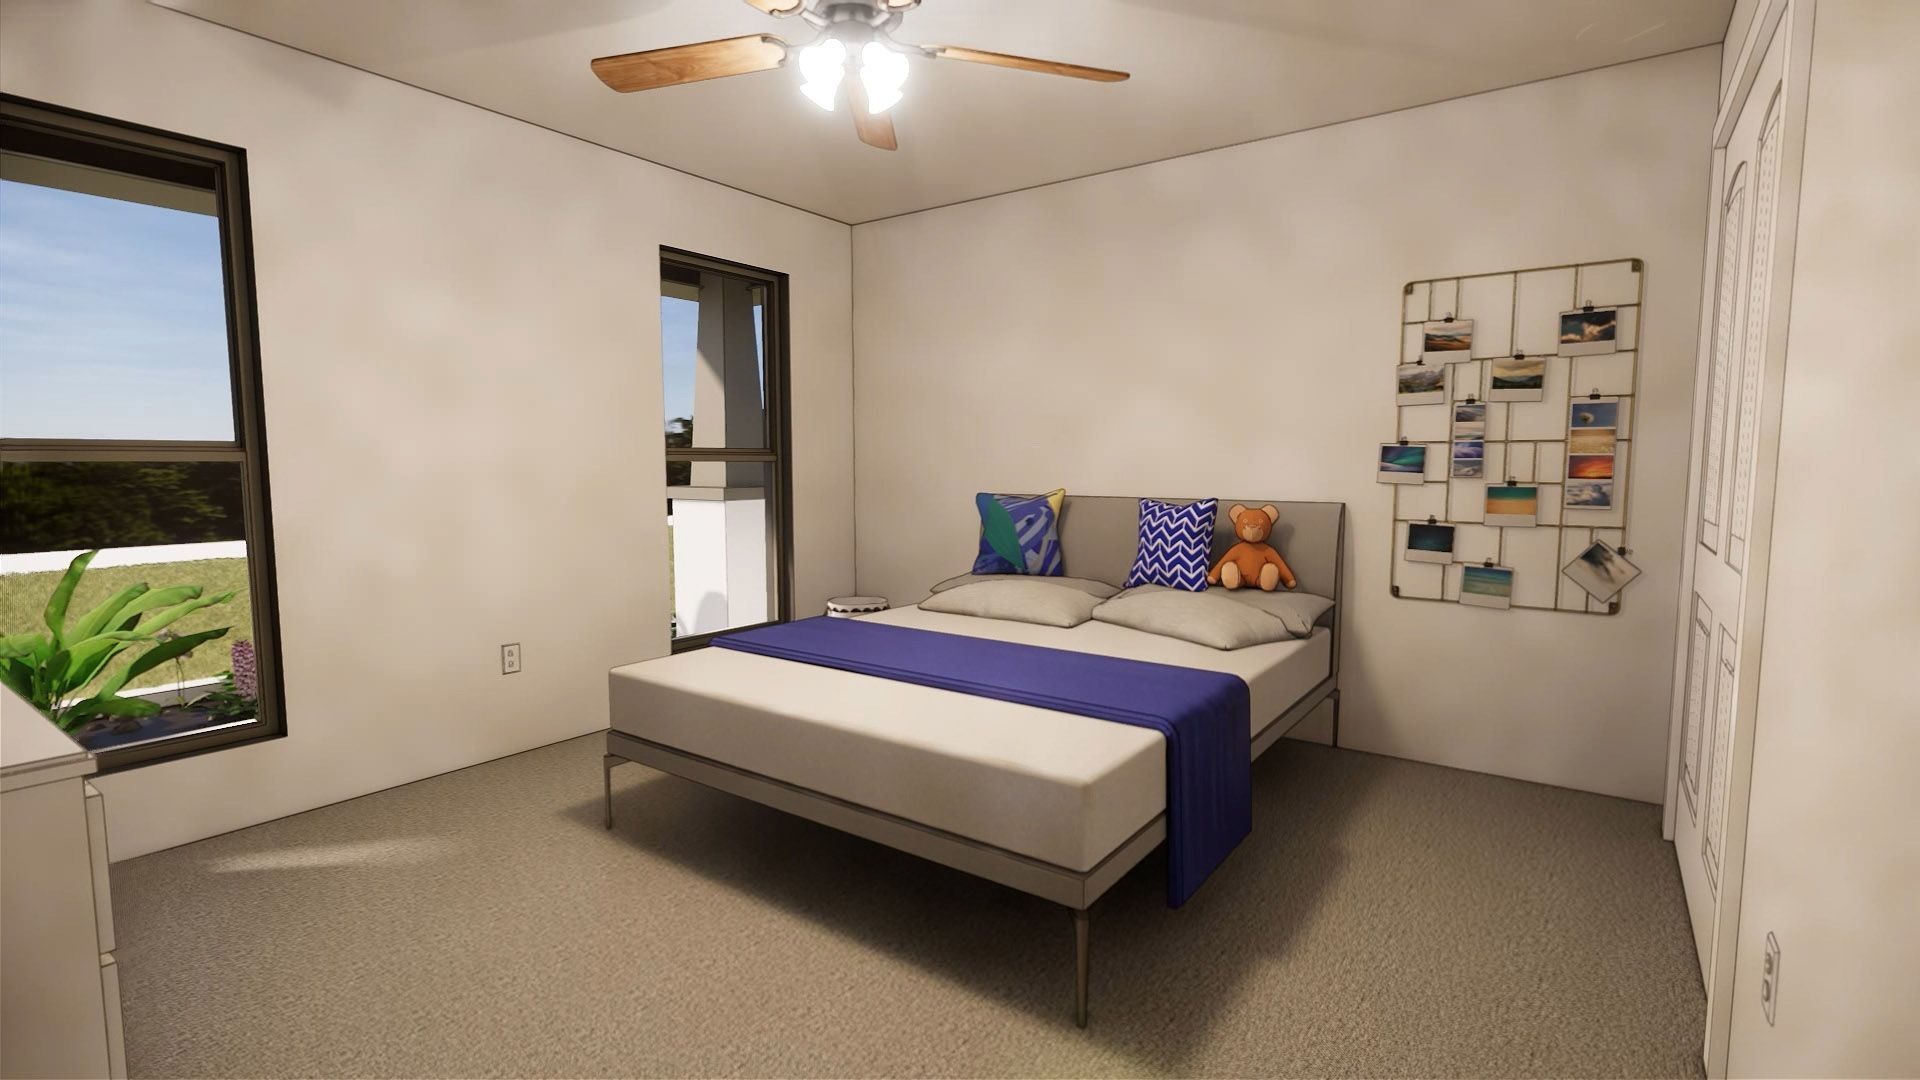 Bedroom featured in the Adalynn By Betenbough Homes in Lubbock, TX